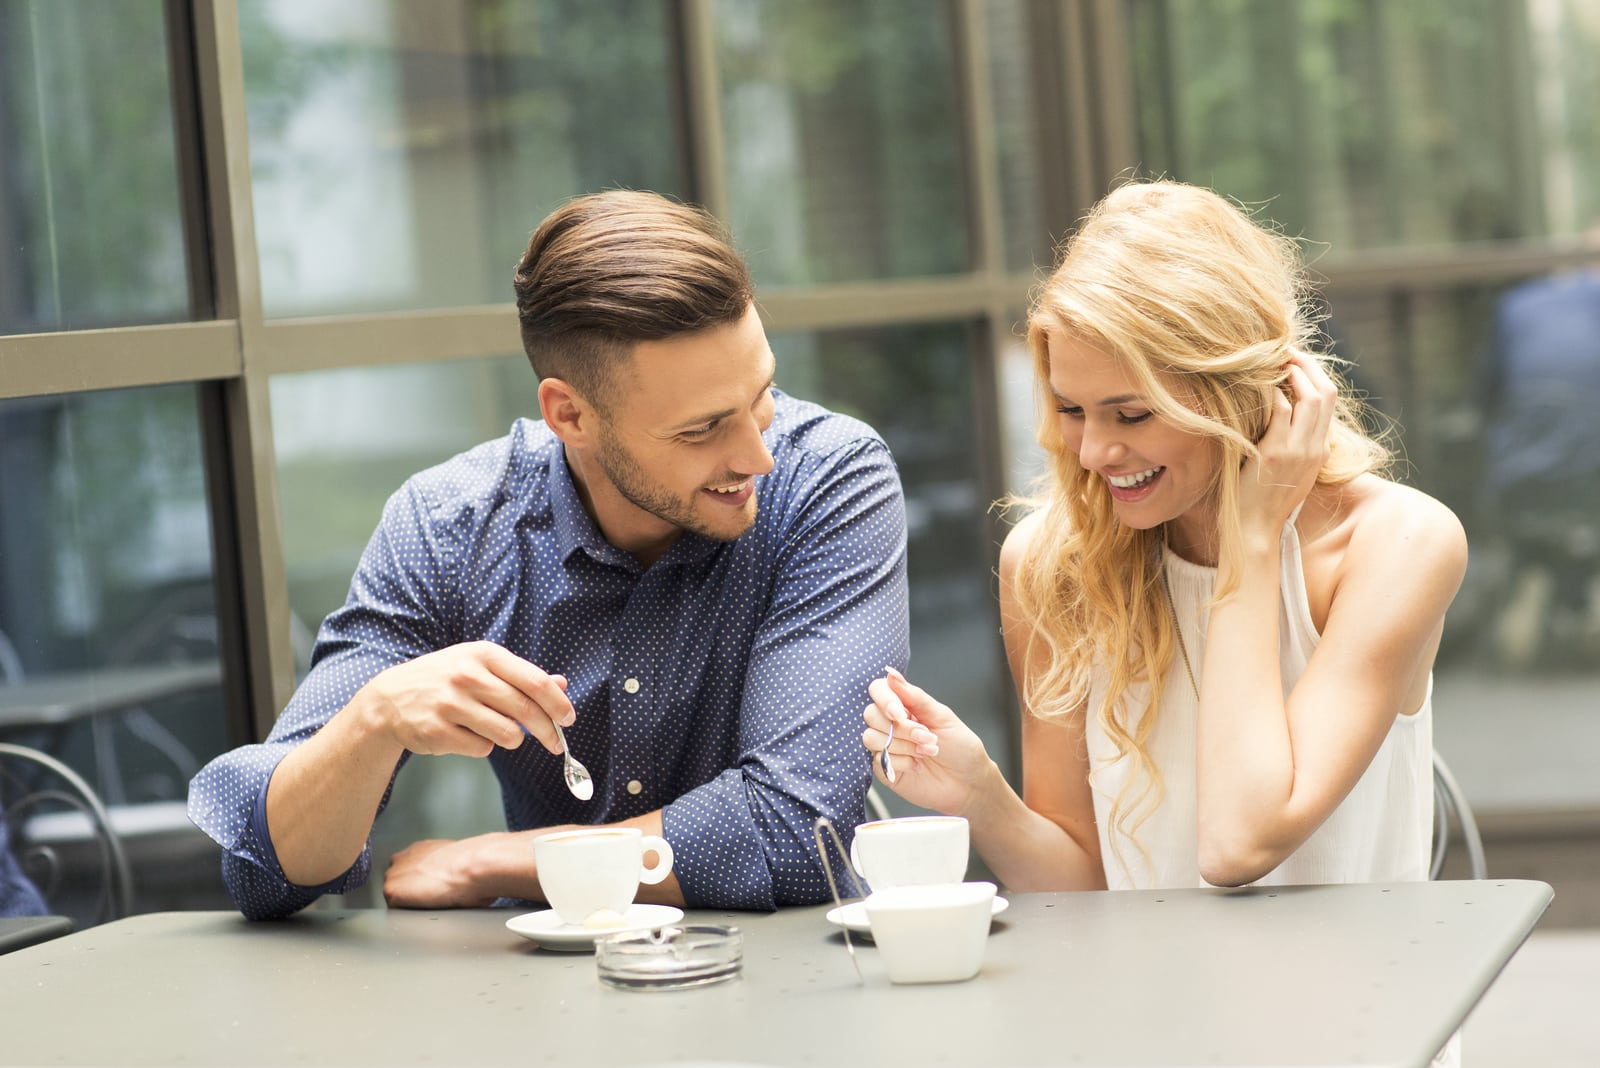 a man and a woman drinking coffee and laughing